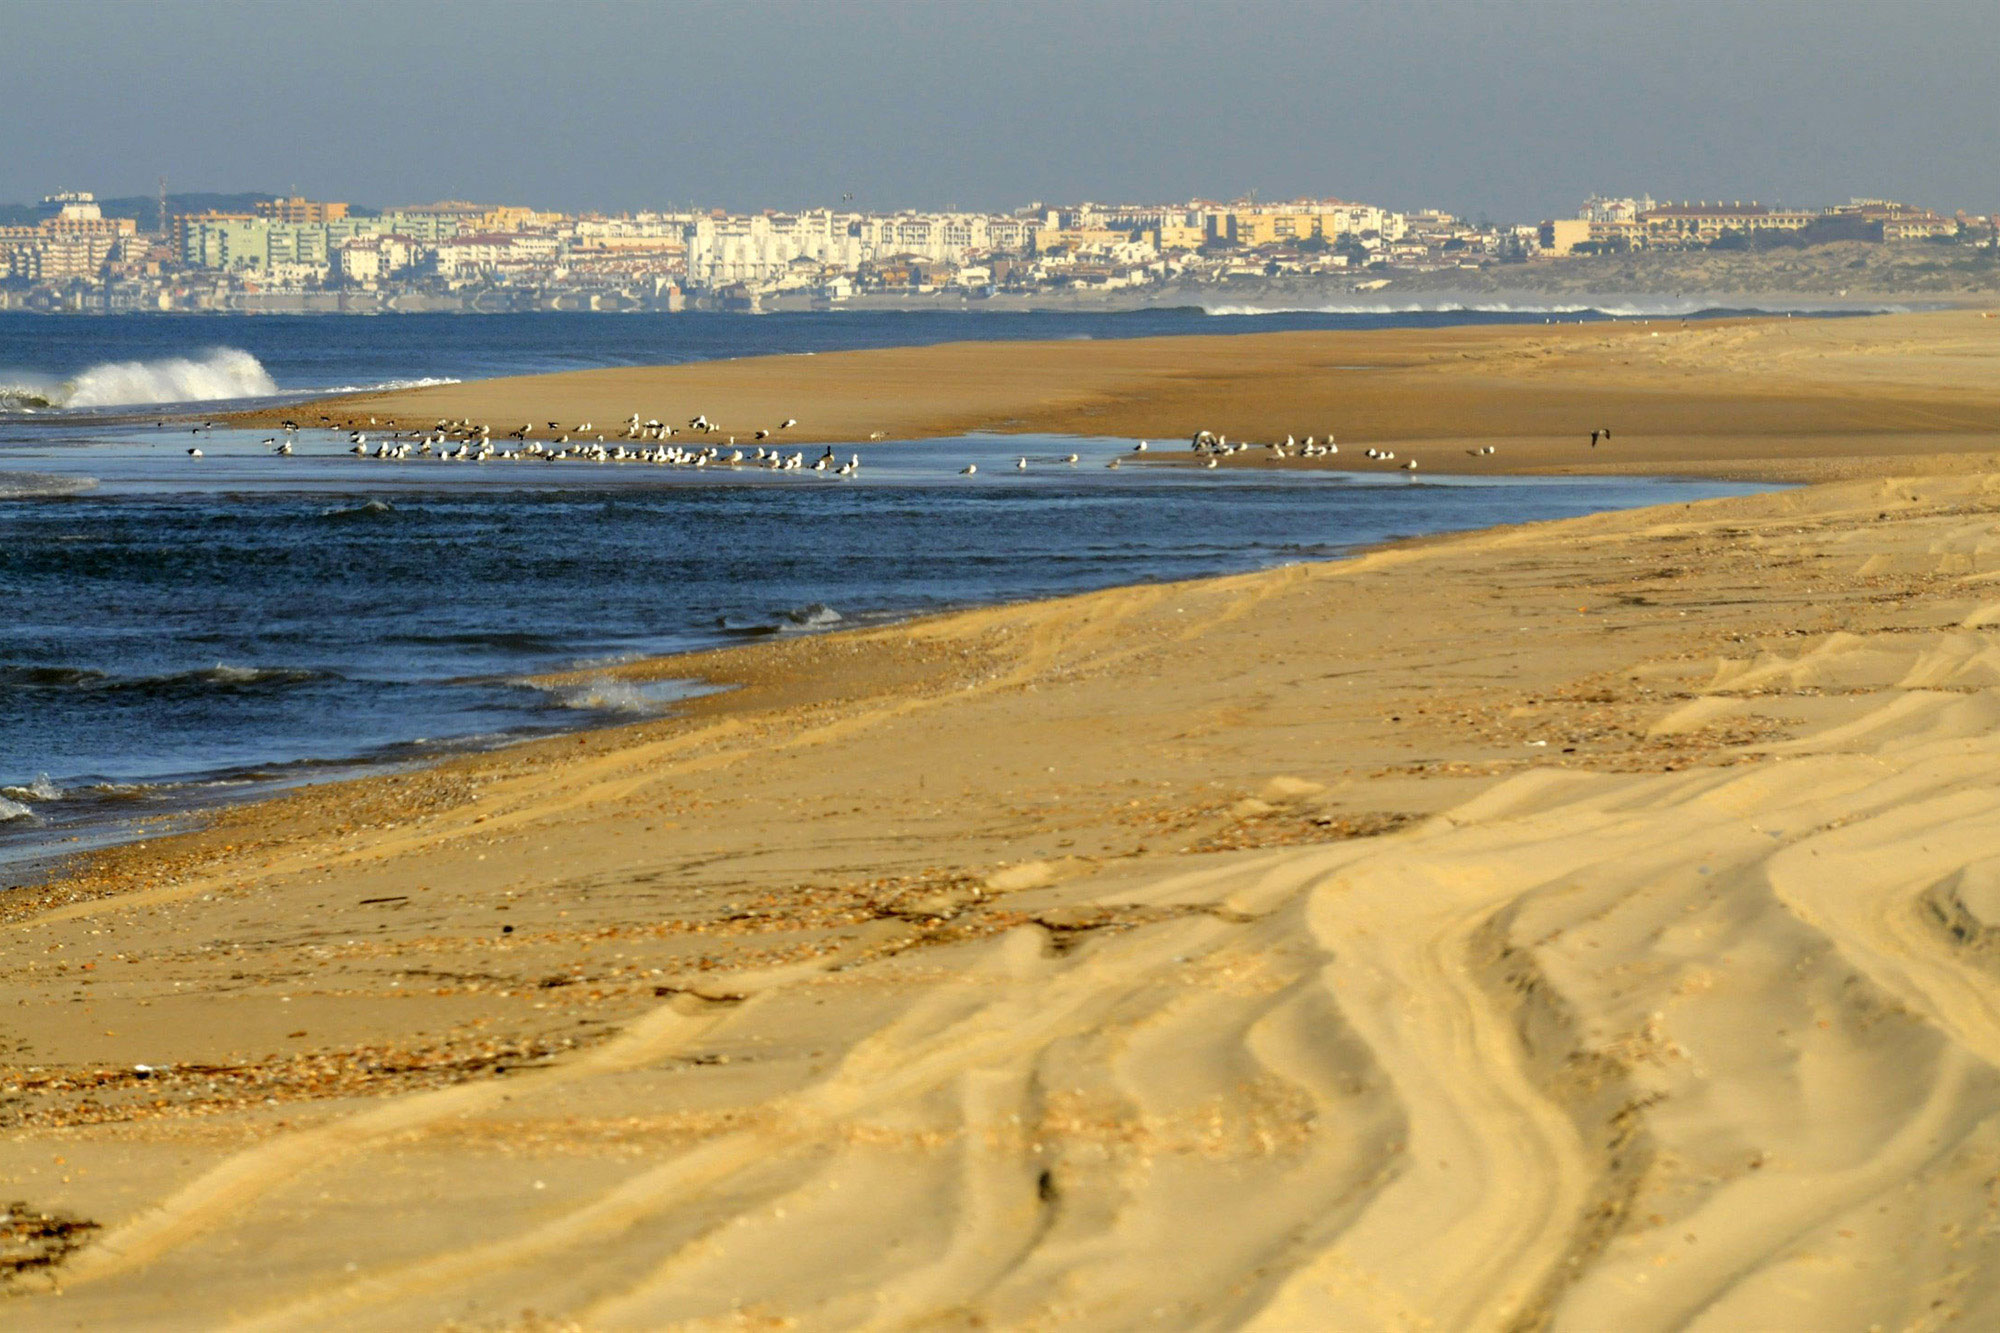 Doñana National Park, a natural wetland reserve in Andalusia, southern Spain. GRID Arendal/Peter Prokosch